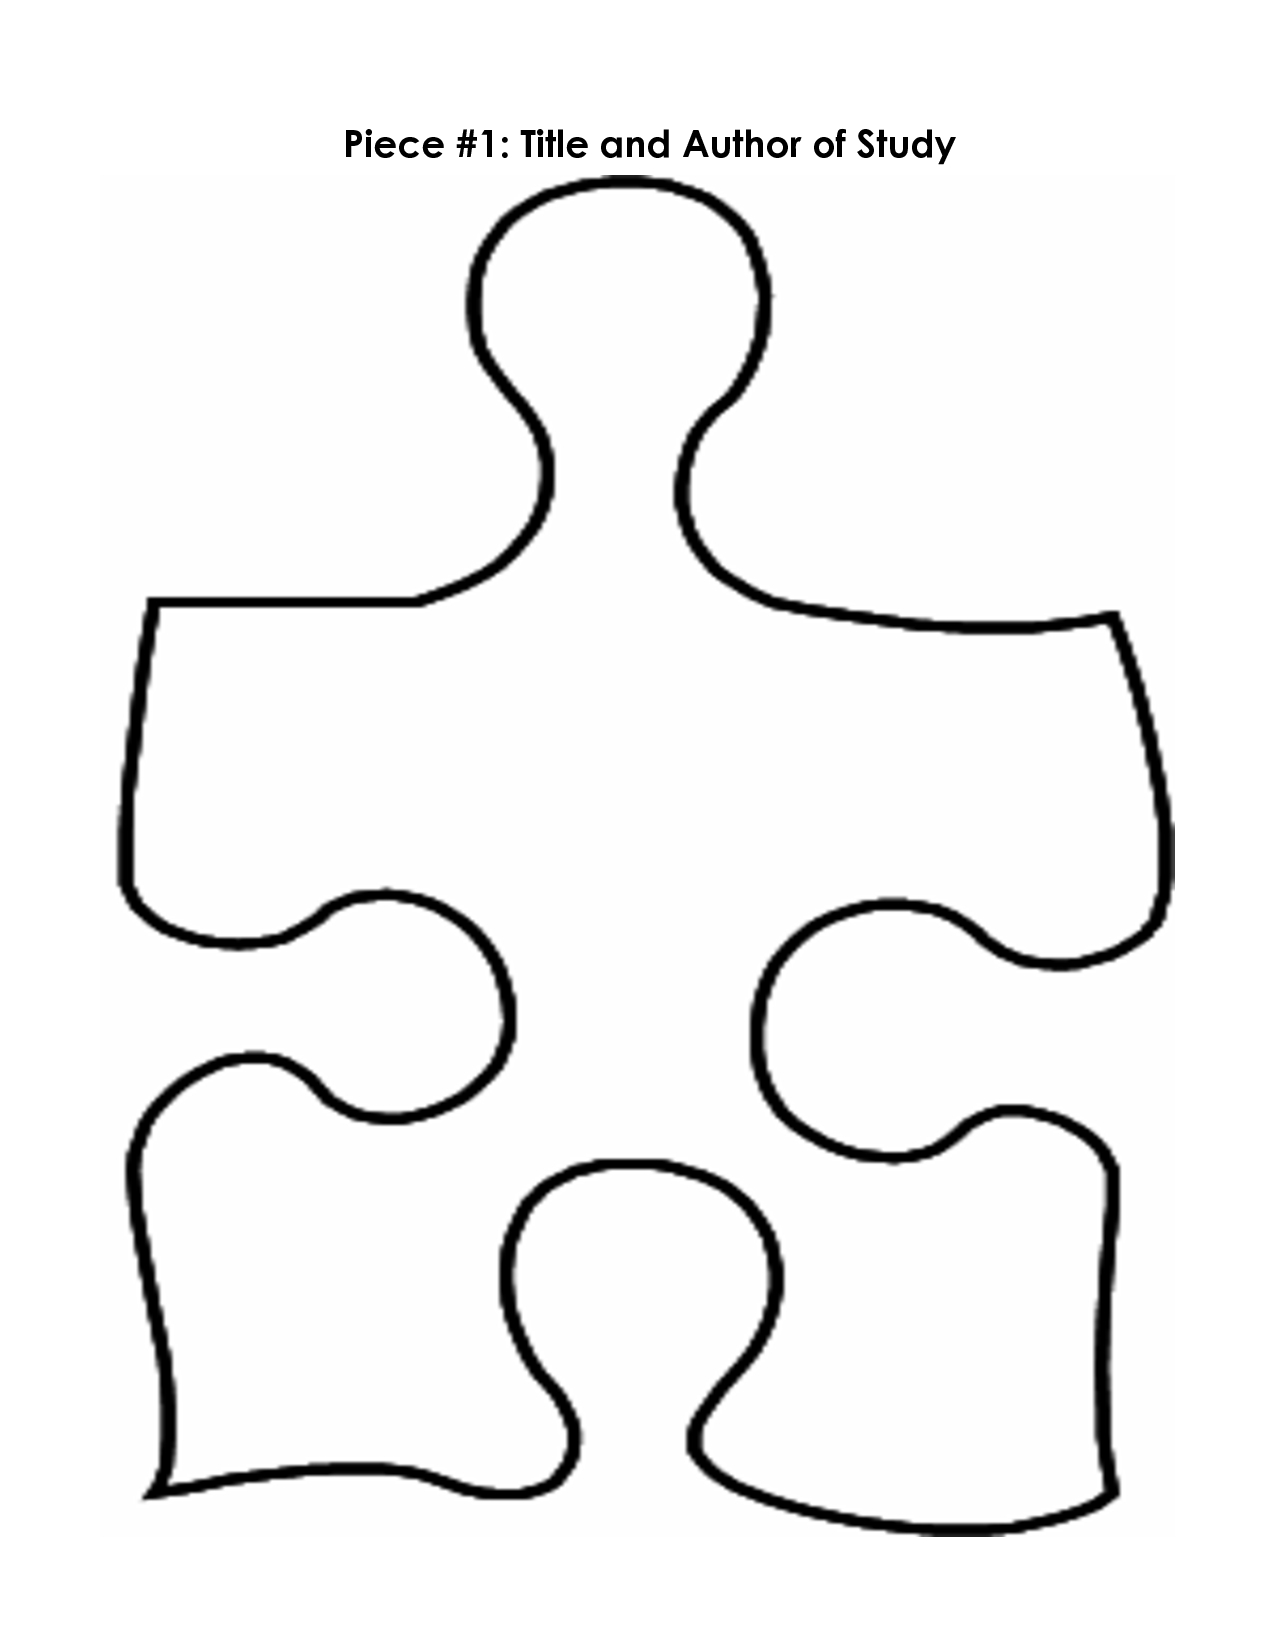 Puzzle Piece Mystery Book Template Pp   Printables   Puzzle Piece - Free Blank Printable Puzzle Pieces